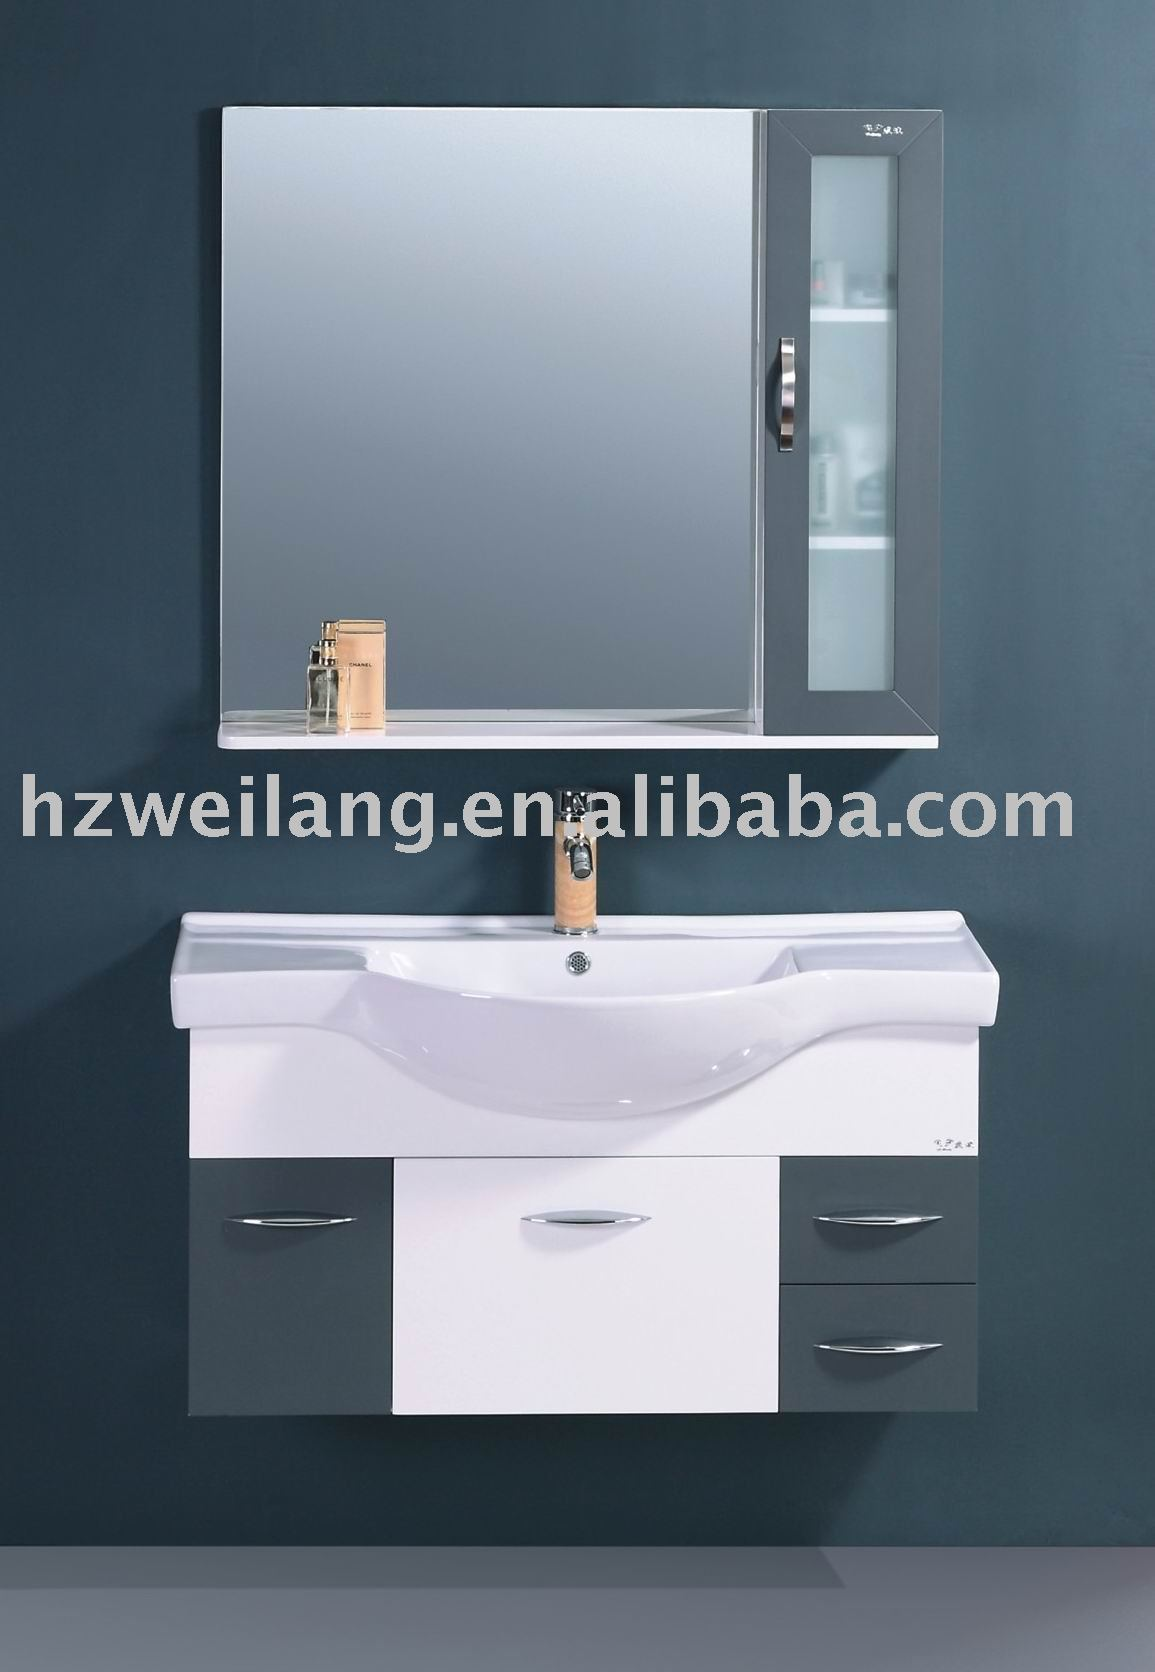 Pvc Bathroom Cabinet Pvc Bathroom Cabinet Suppliers and. Things To Make You Use The Bathroom